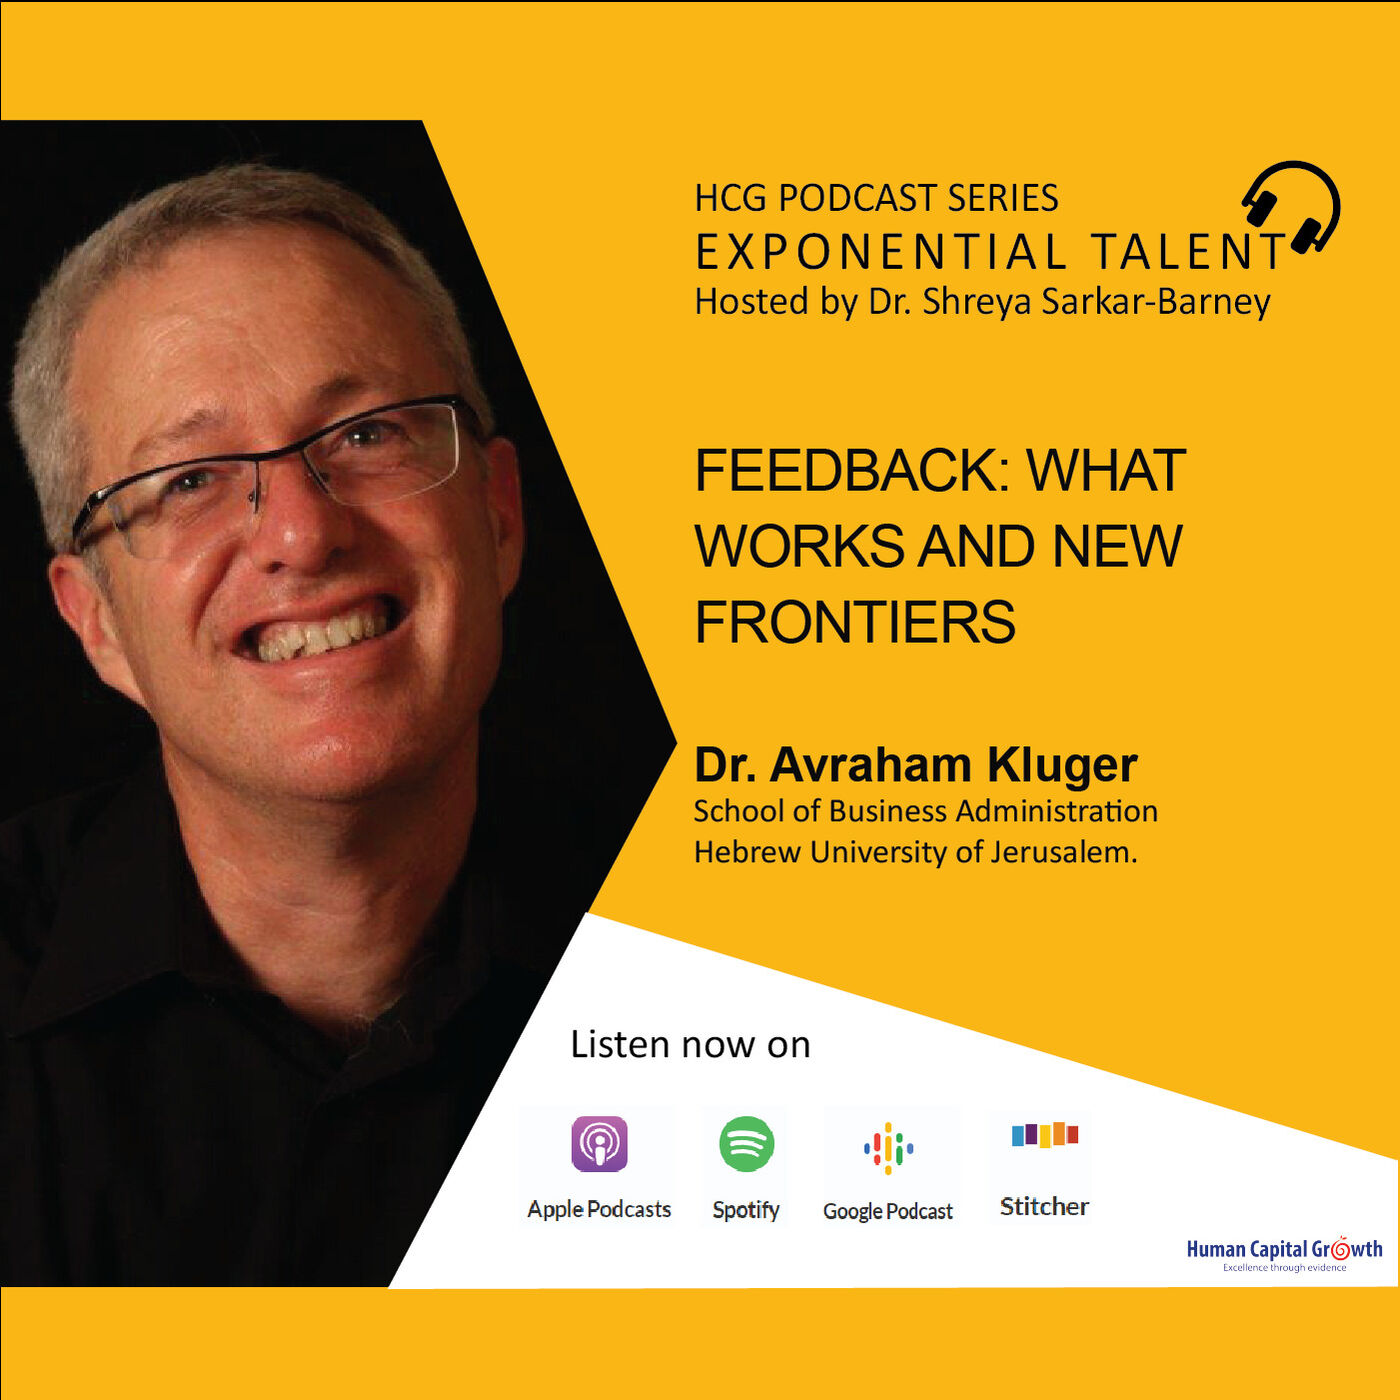 Feedback: What works and new frontiers